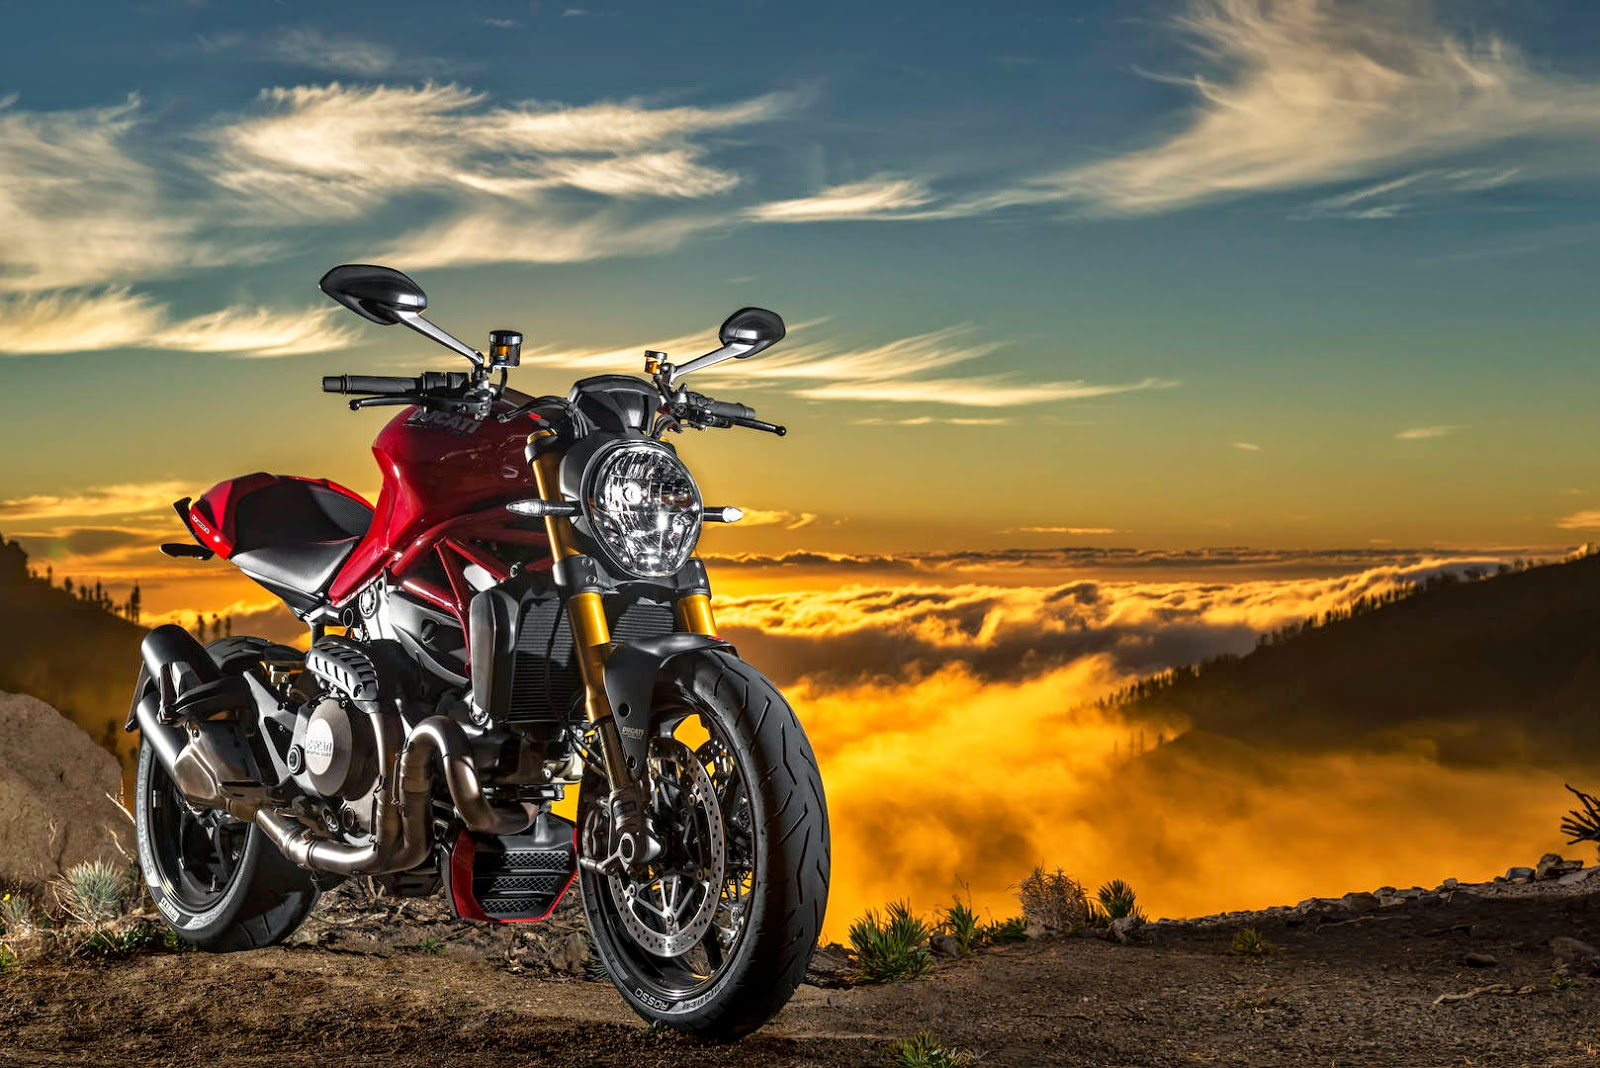 Ducati Monster 1200 S: The High Tech Power Real Monster